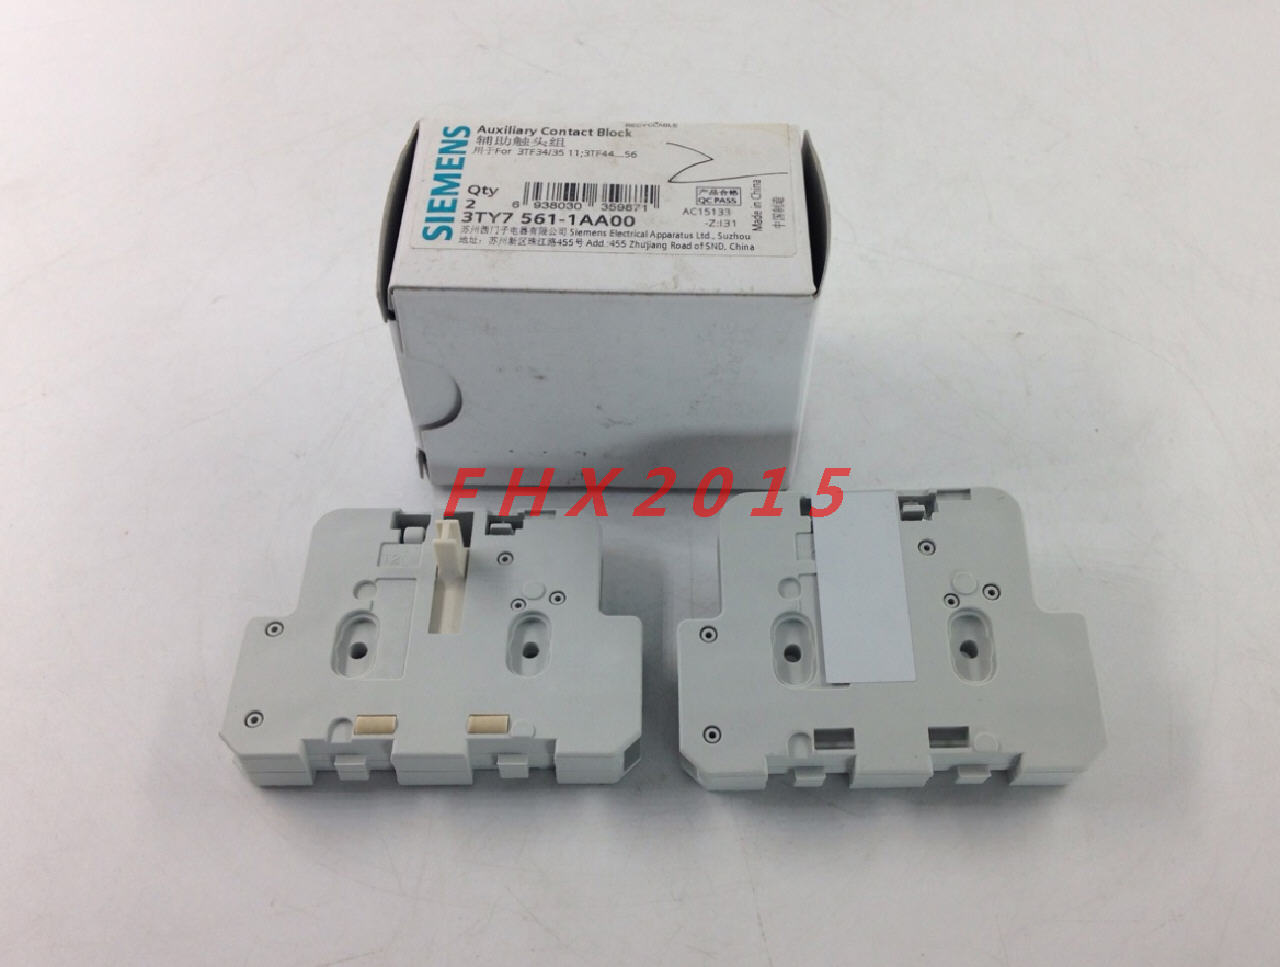 1 PCS NEW IN BOX Siemens side auxiliary contacts contact 3TY7 561-1AA00